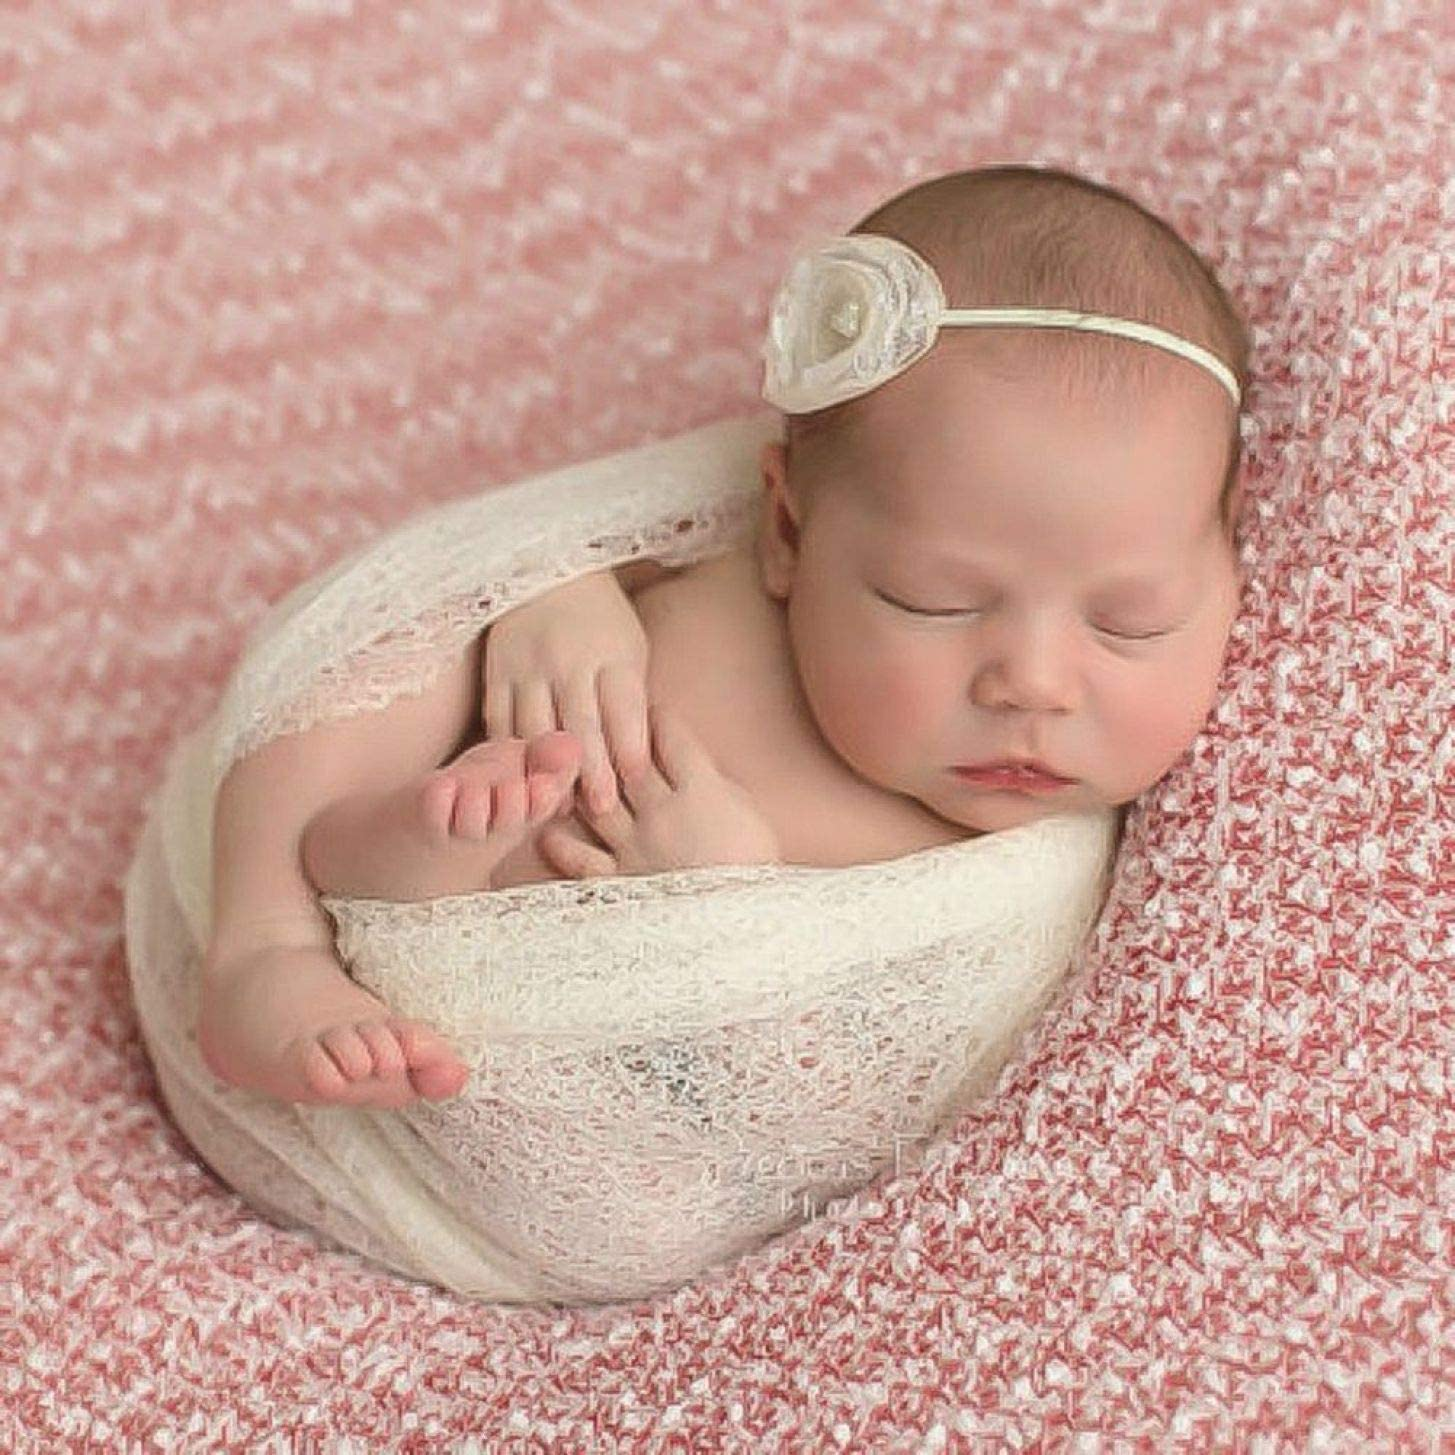 8gh787h Practical Boy Girl Newborn Soft Mesh Gauze Wrap Swaddle Baby Photography Prop Background None 03